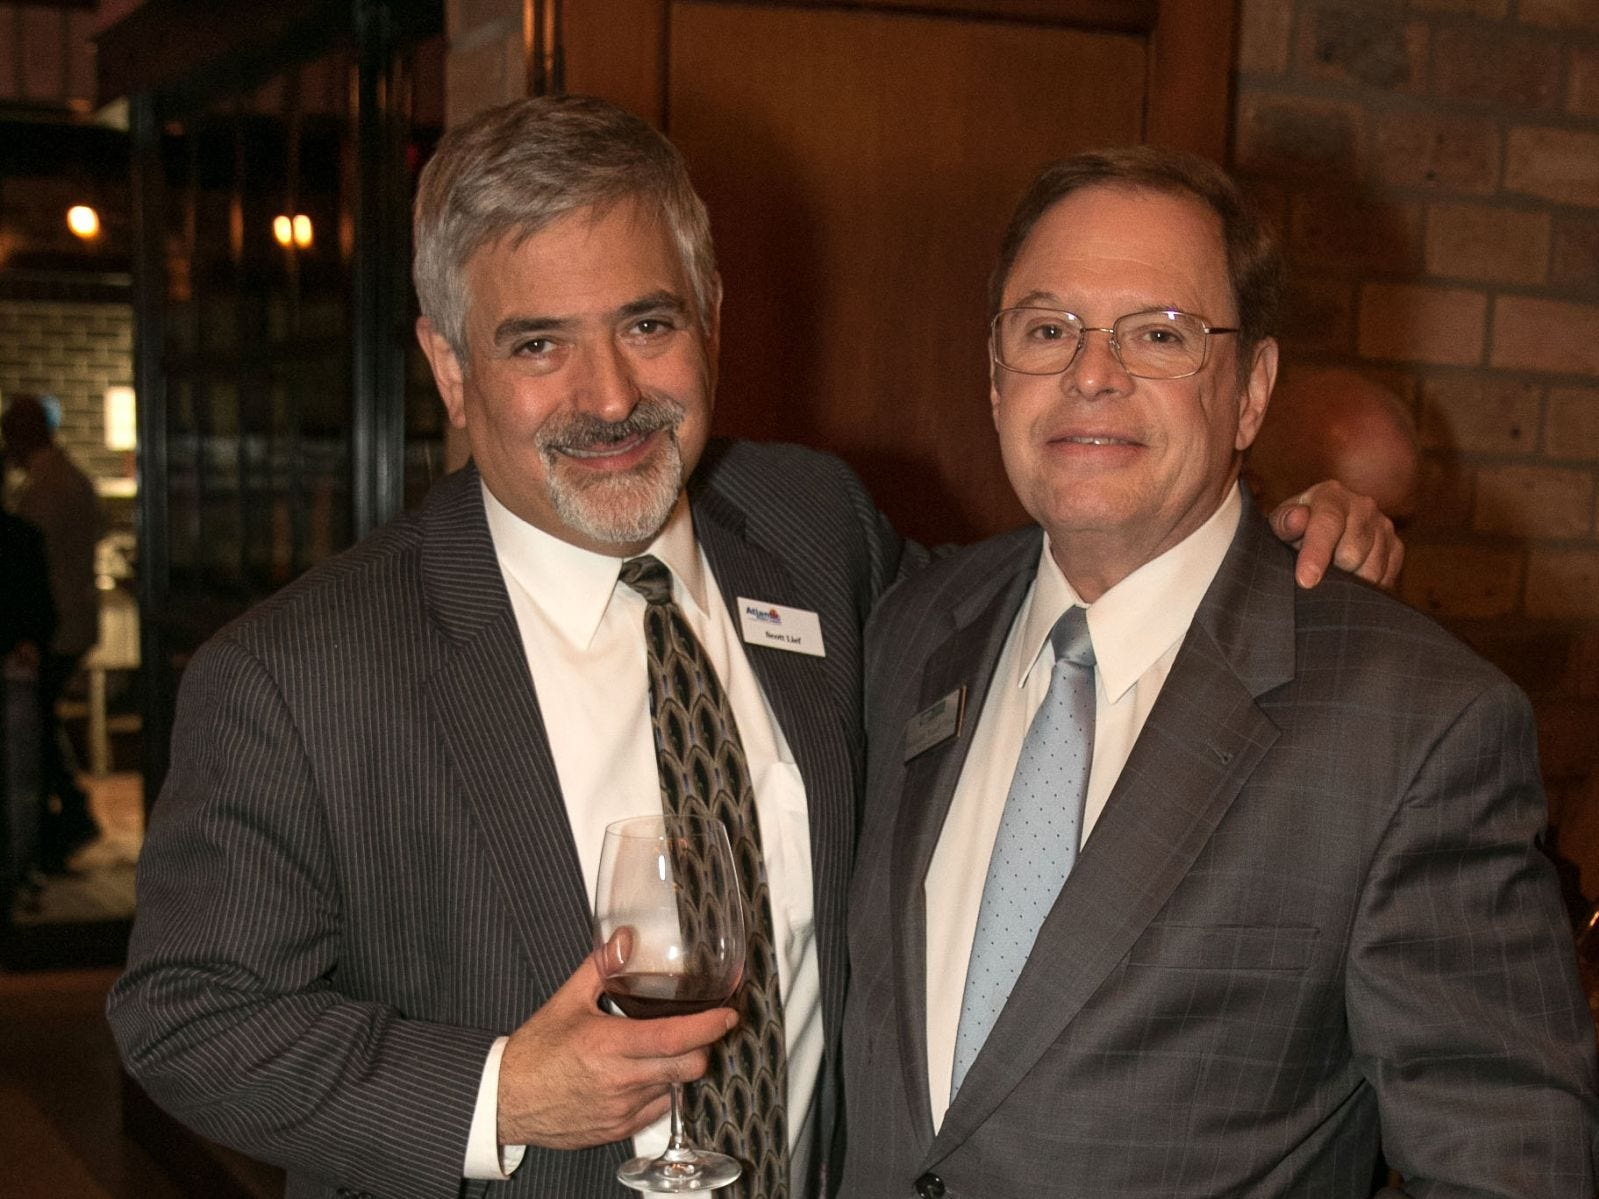 Scott Lief, Randy Wine. Christina Gibbons of Special Properties held a cocktail reception to acknowledge her clients at Roots Steakhouse in Ridgewood. 02/07/2019